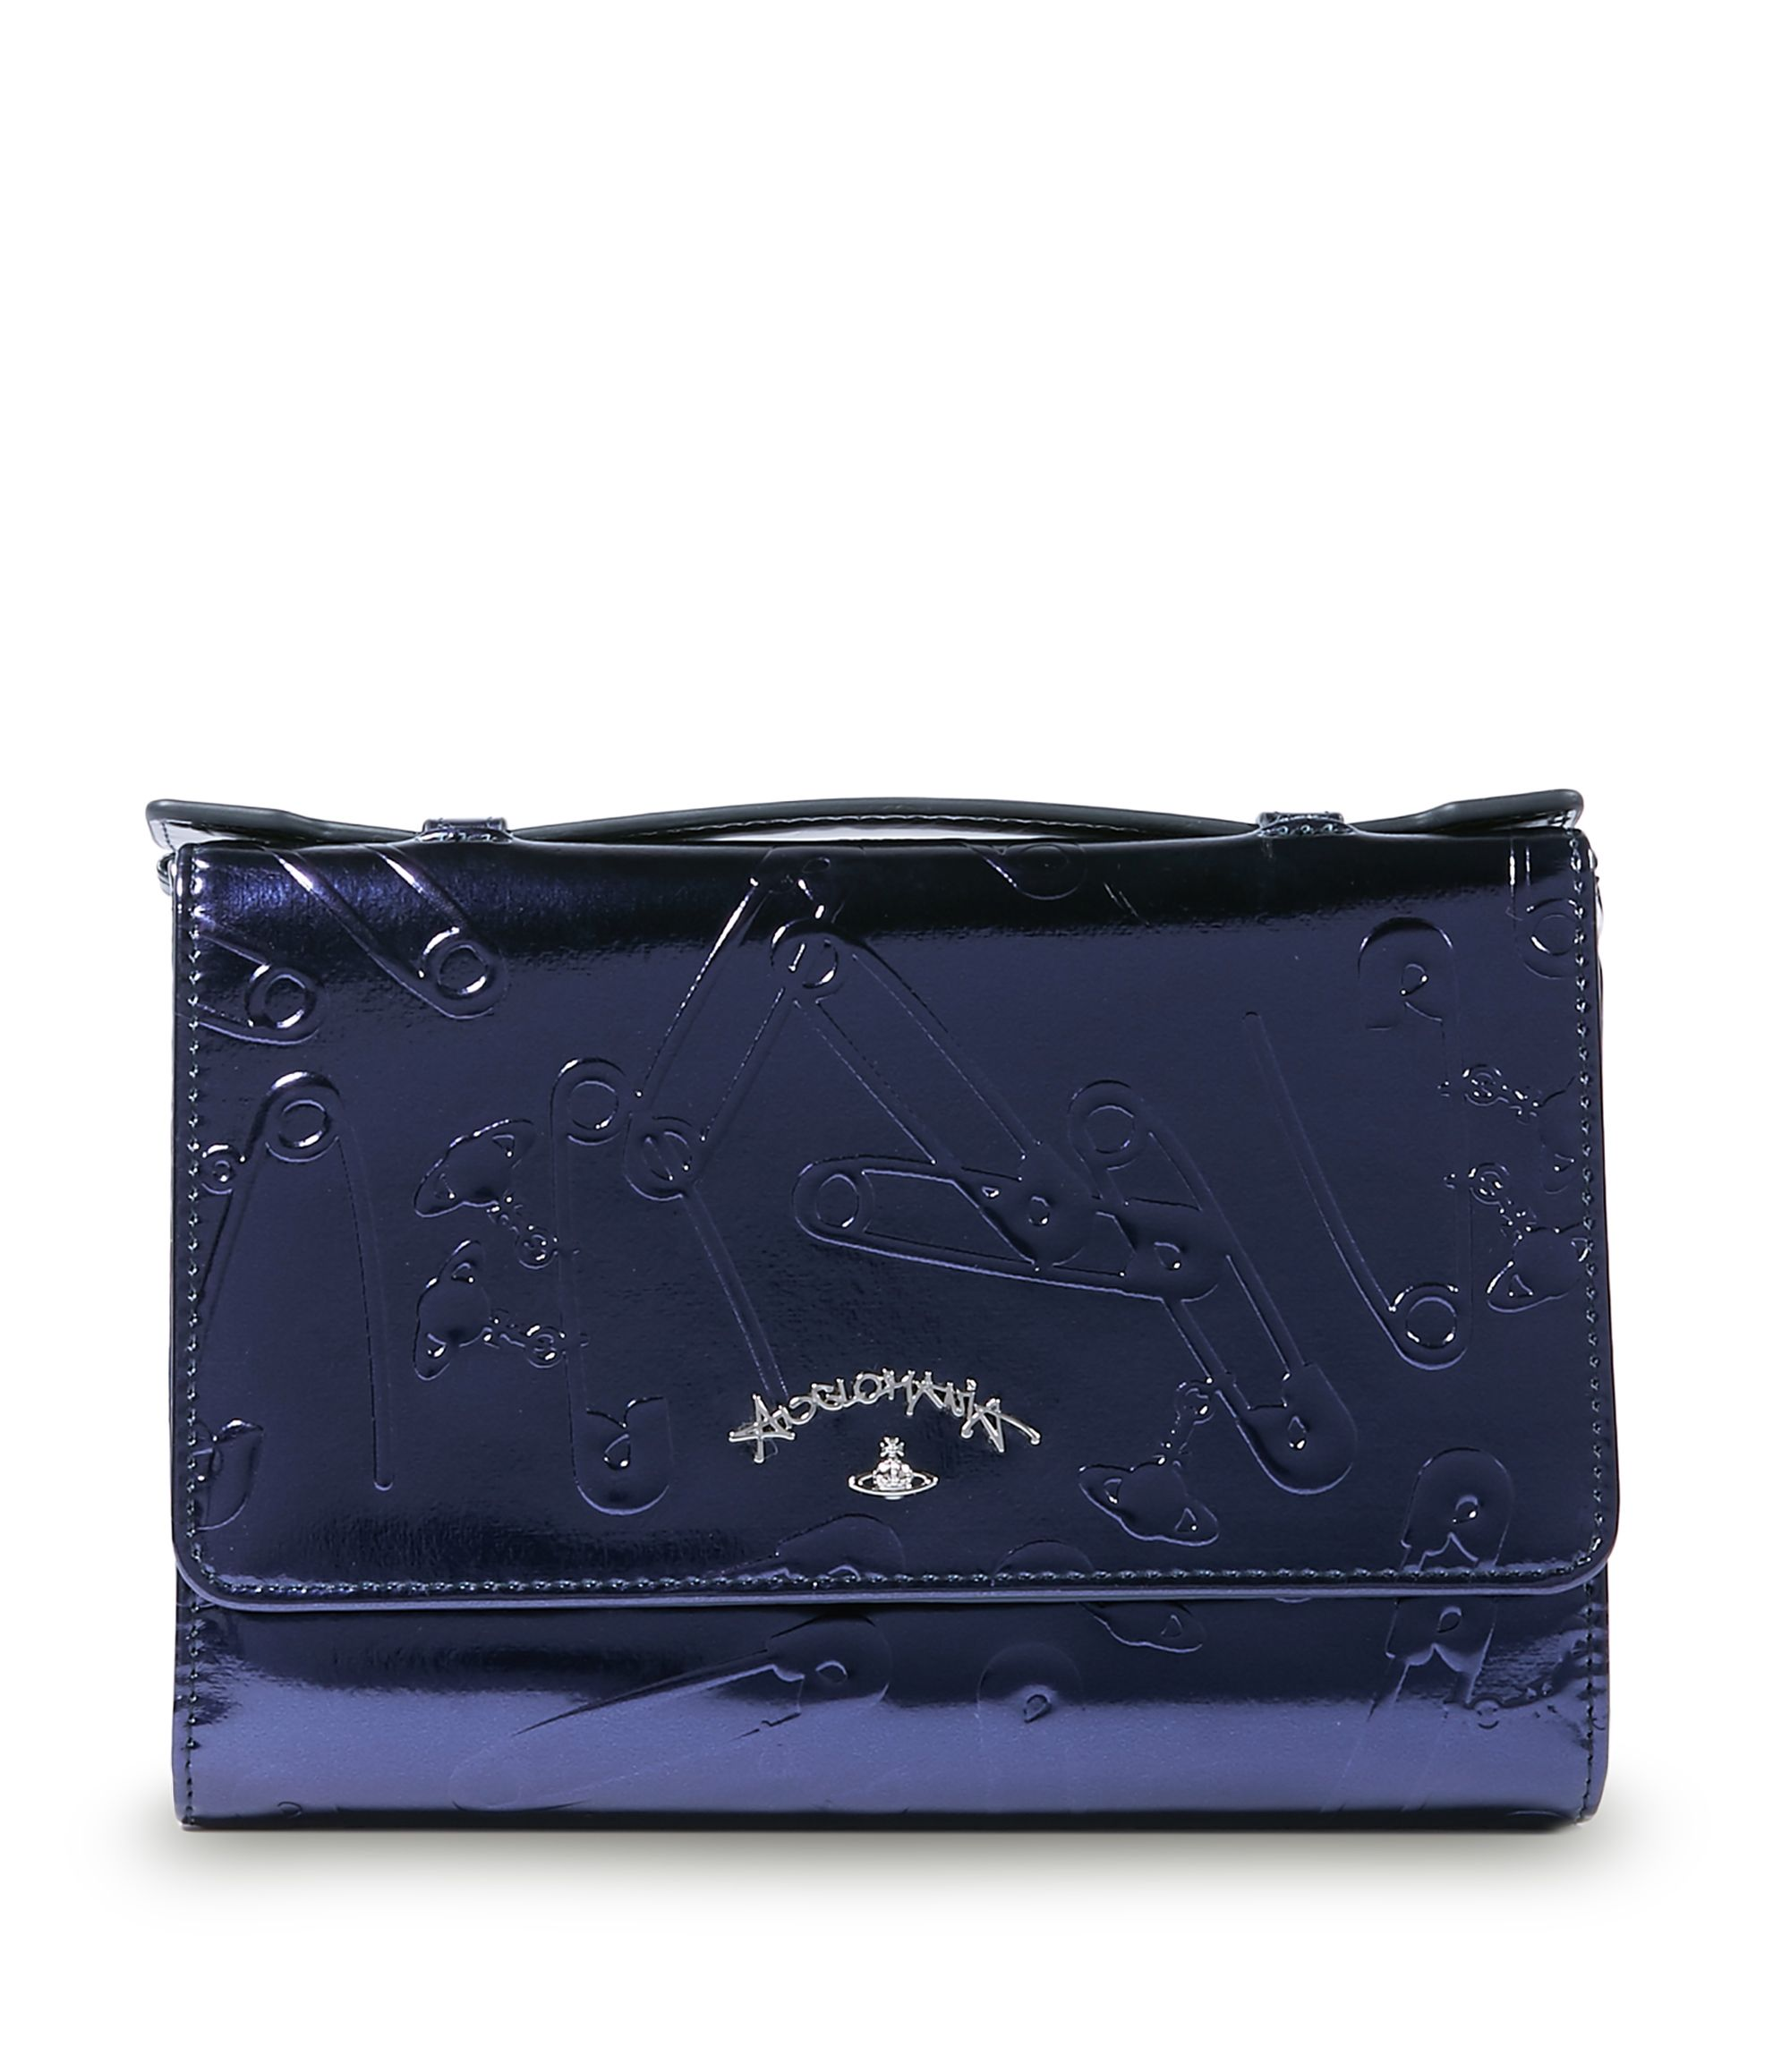 6ac86f470160 VIVIENNE WESTWOOD Blue Metal Safety Pin Travel Bag 321249.   viviennewestwood…